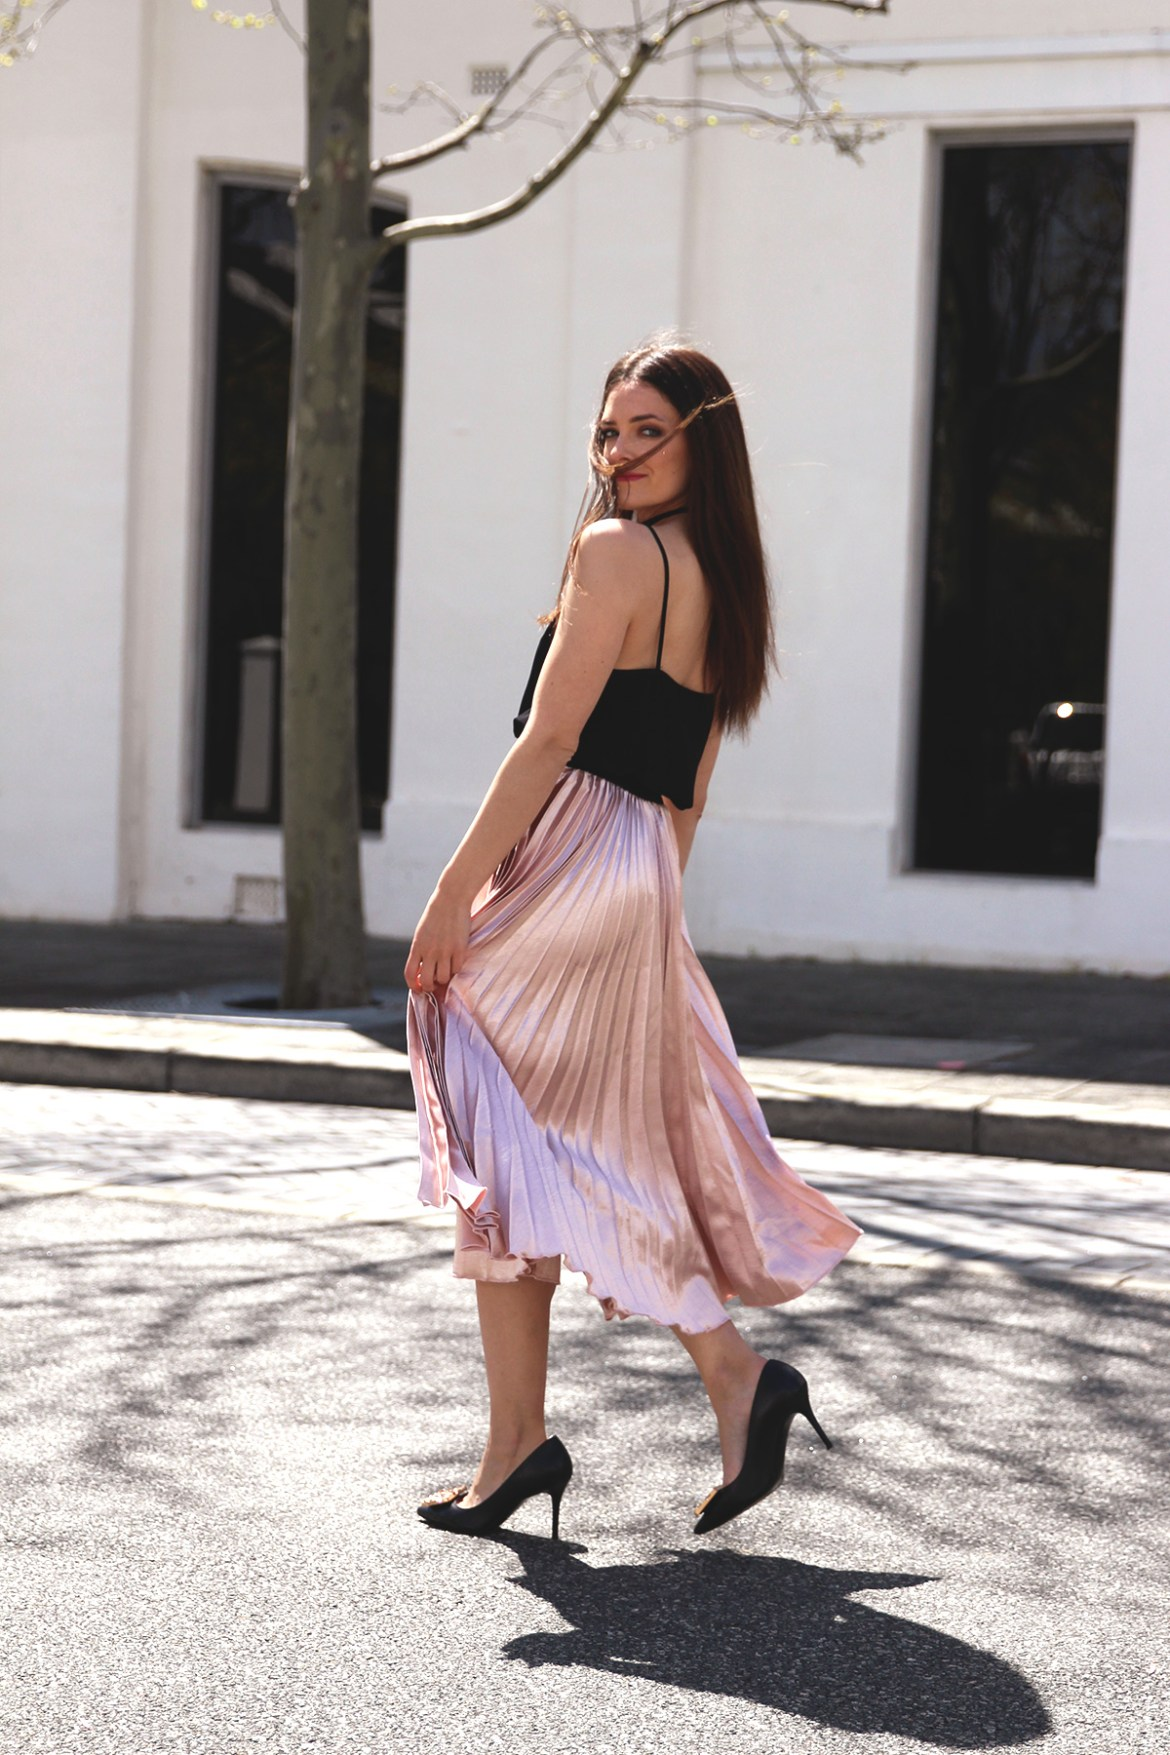 Perth fashion blogger Inspiring Wit @inspiringwit in the pink pleated metallic skirt from Hello Parry #metallicskirt #pleatedskirt #fashionbloggers